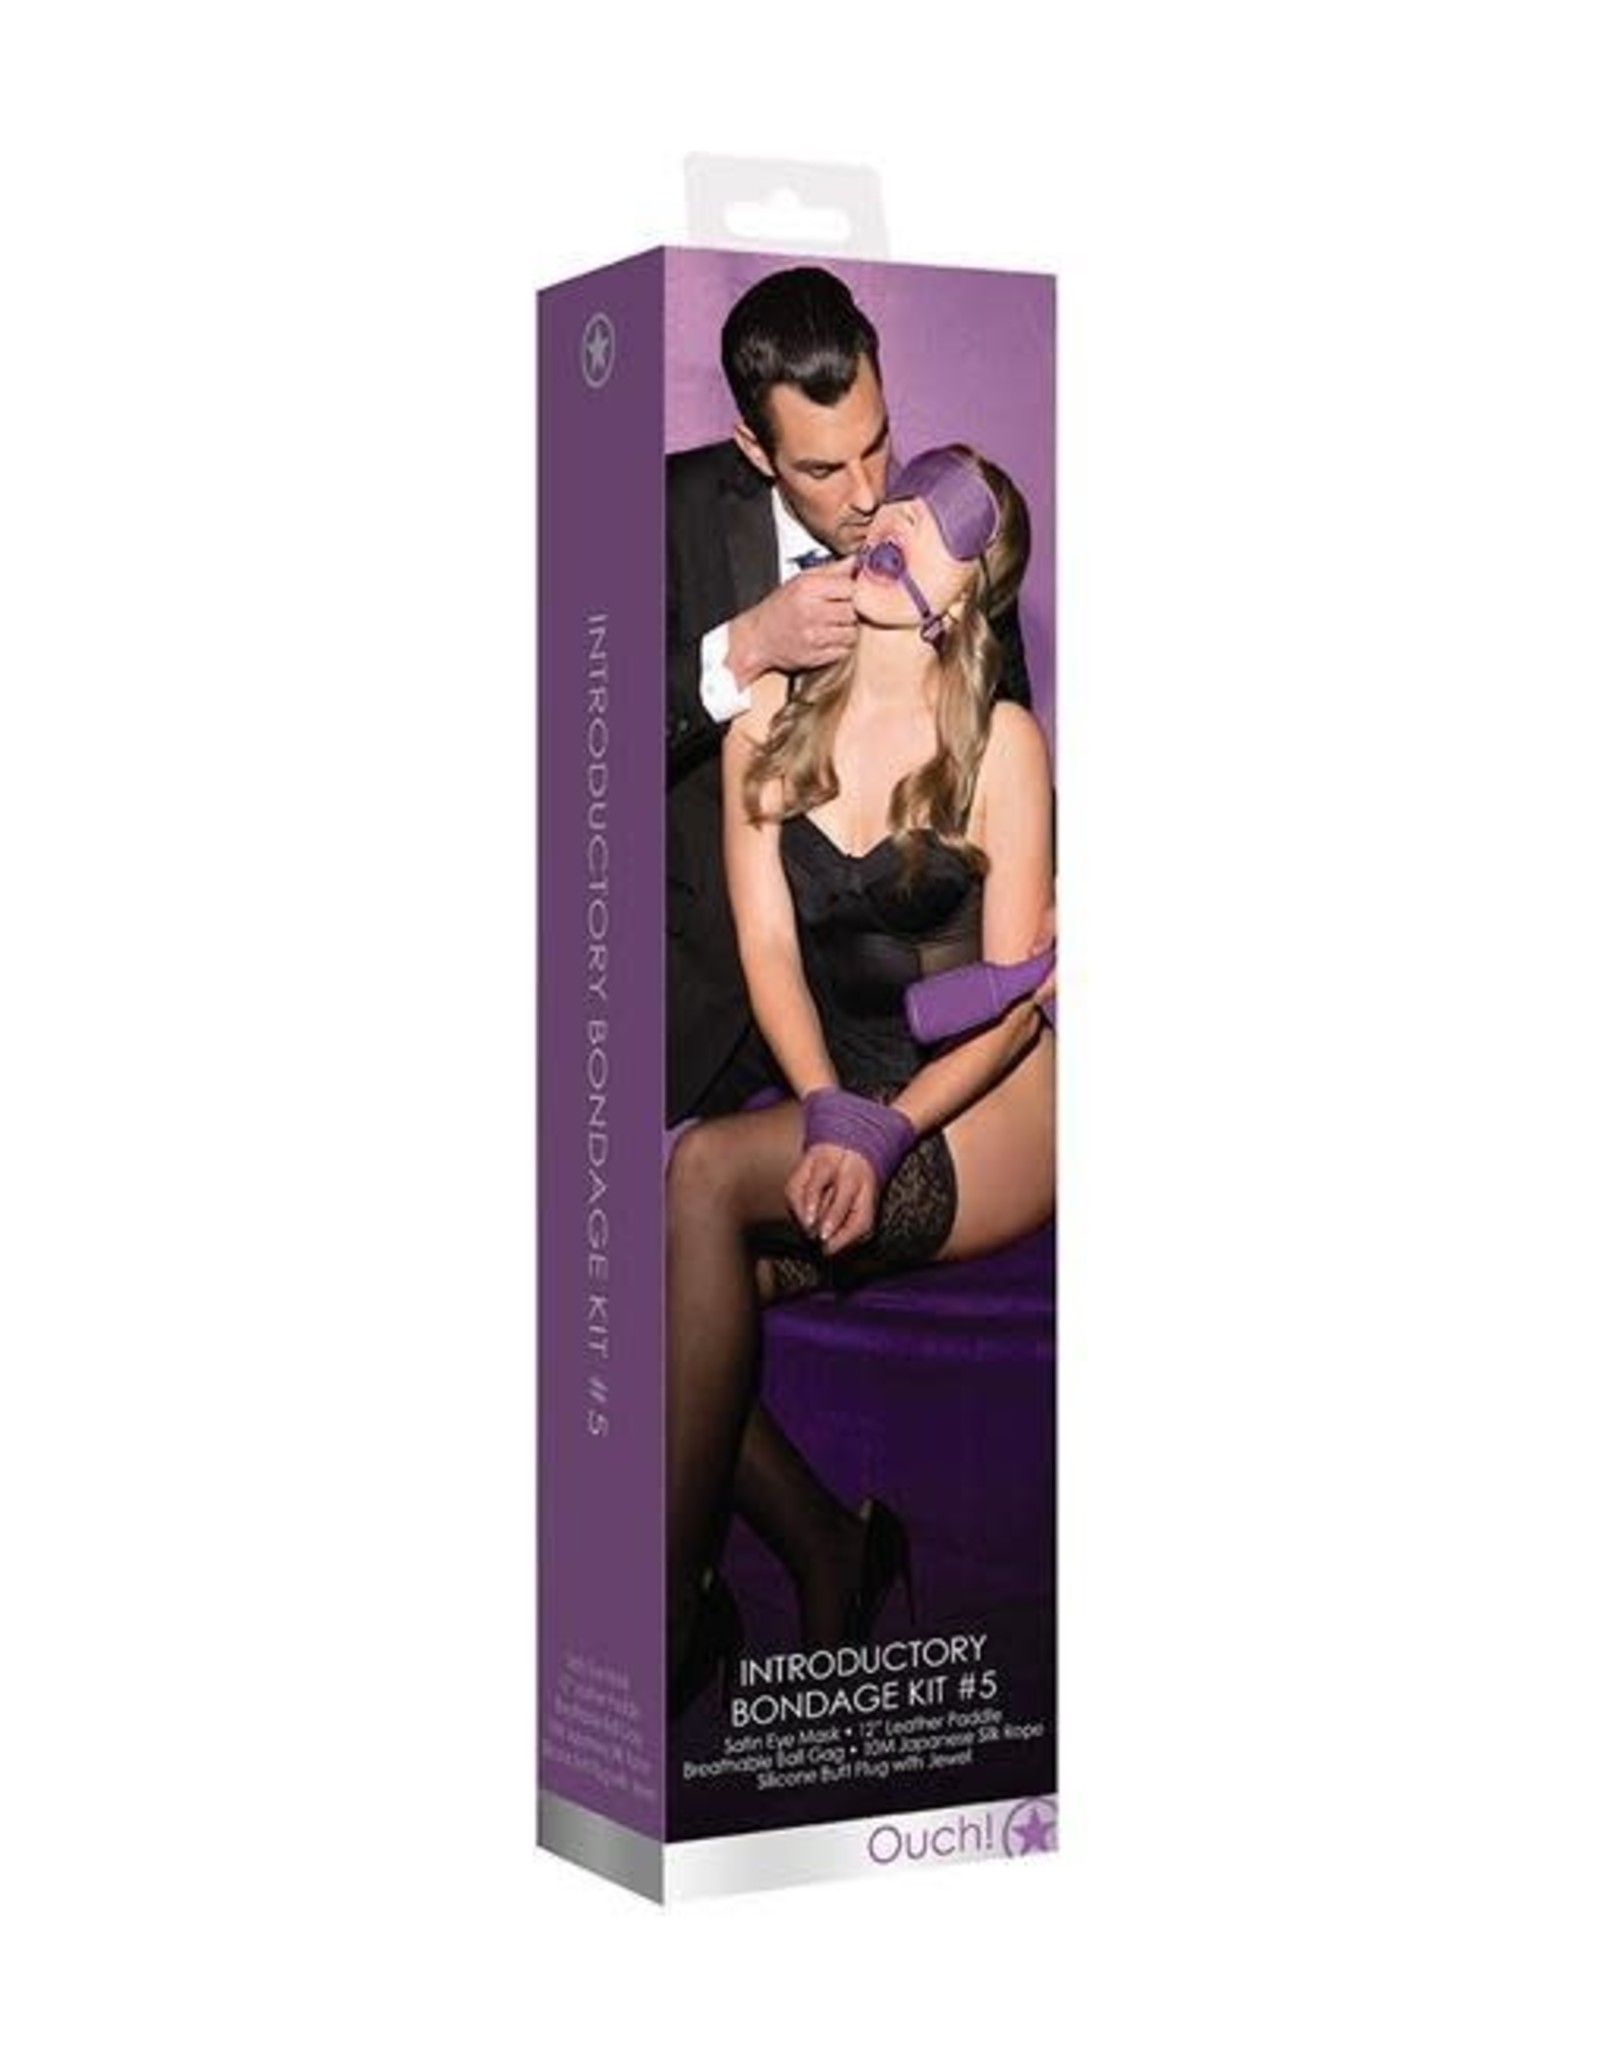 Ouch! Ouch! Introductory Bondage Kit #5 (Purple)